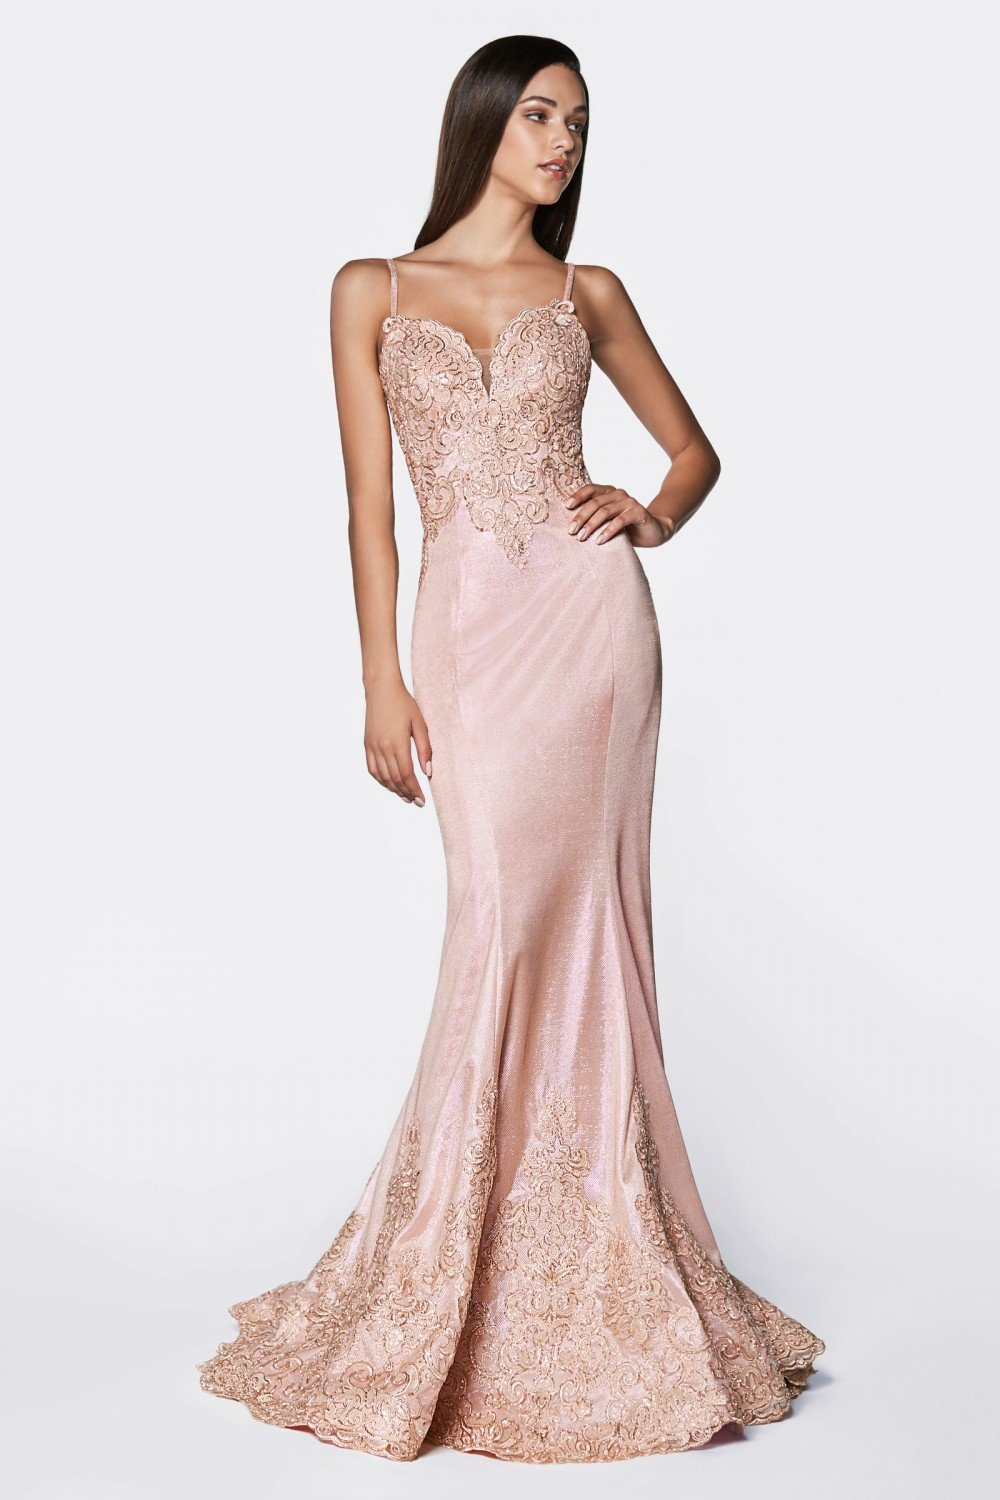 Rose Gold fitted metallic gown with lace appliqued bodice and scallop lace hem.